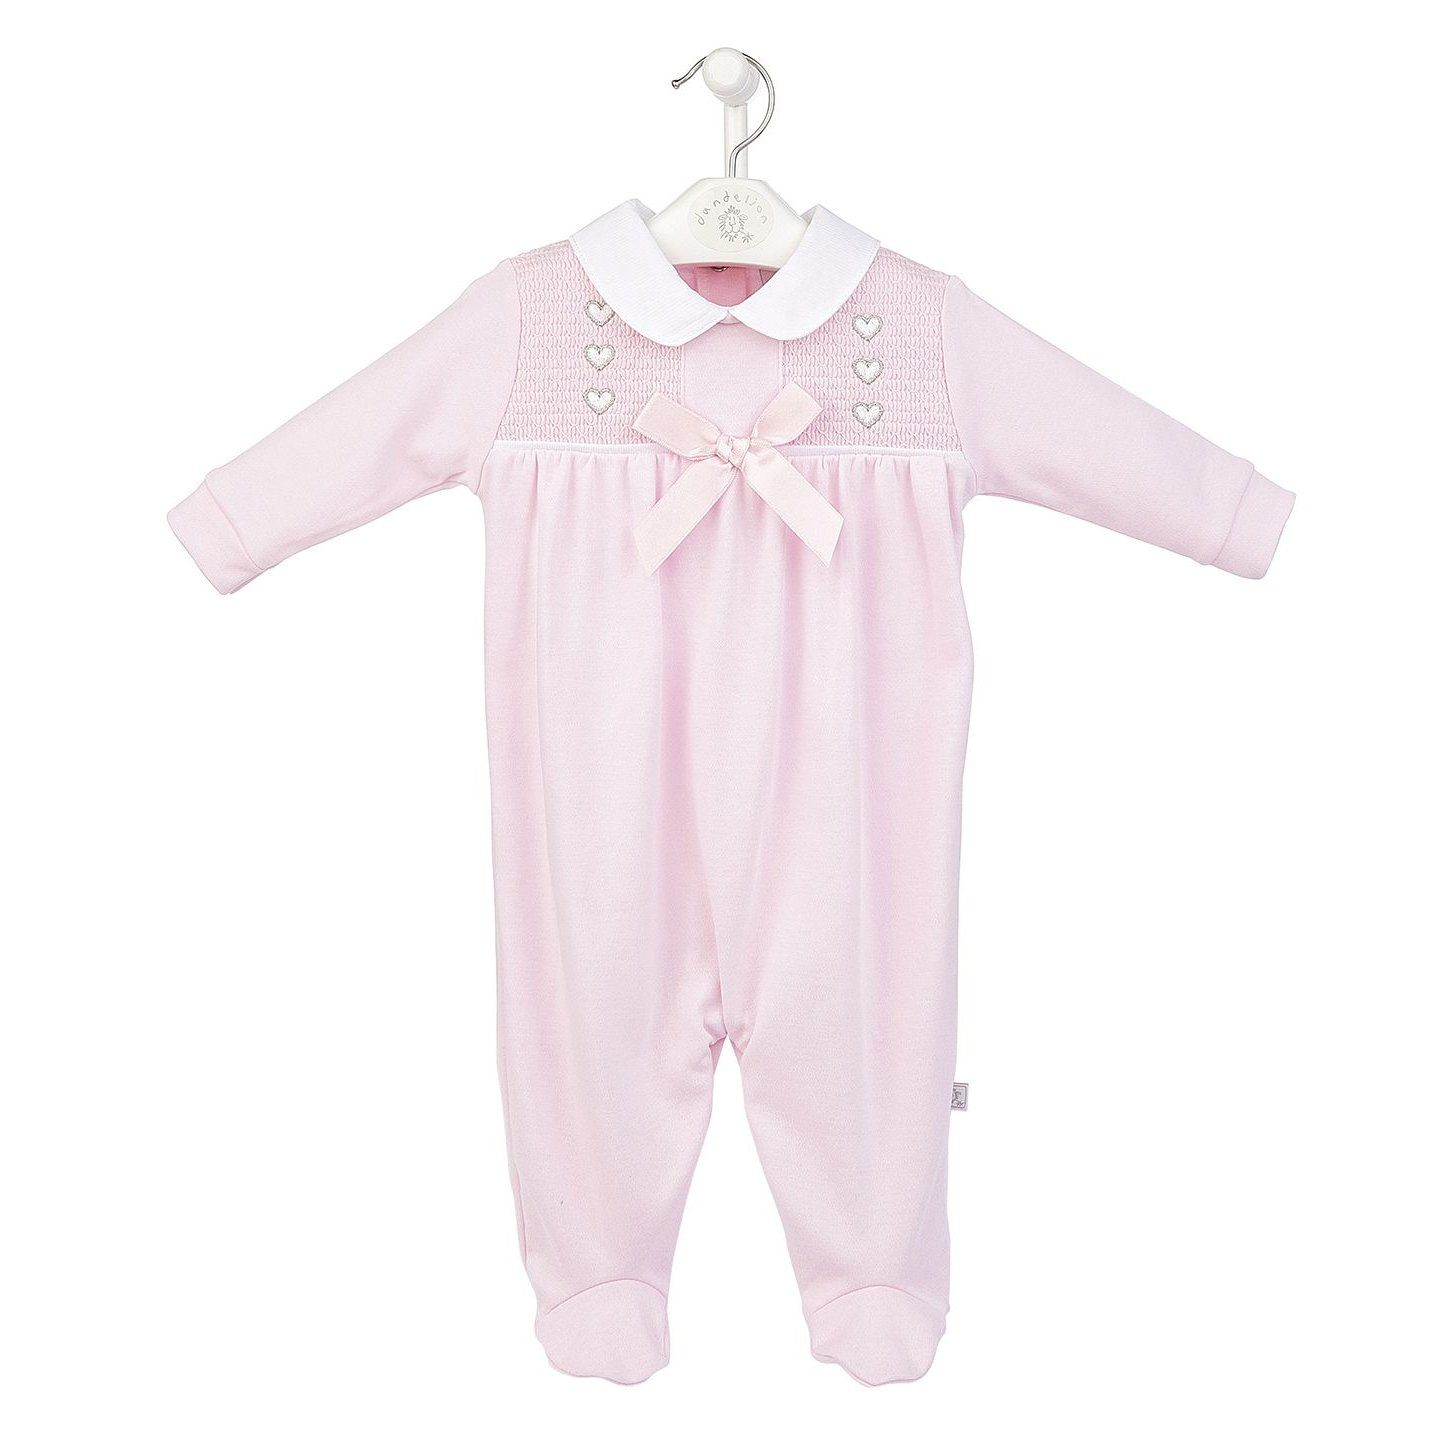 Dandelion Pink Heart Smocked Sleepsuit | Millie and John